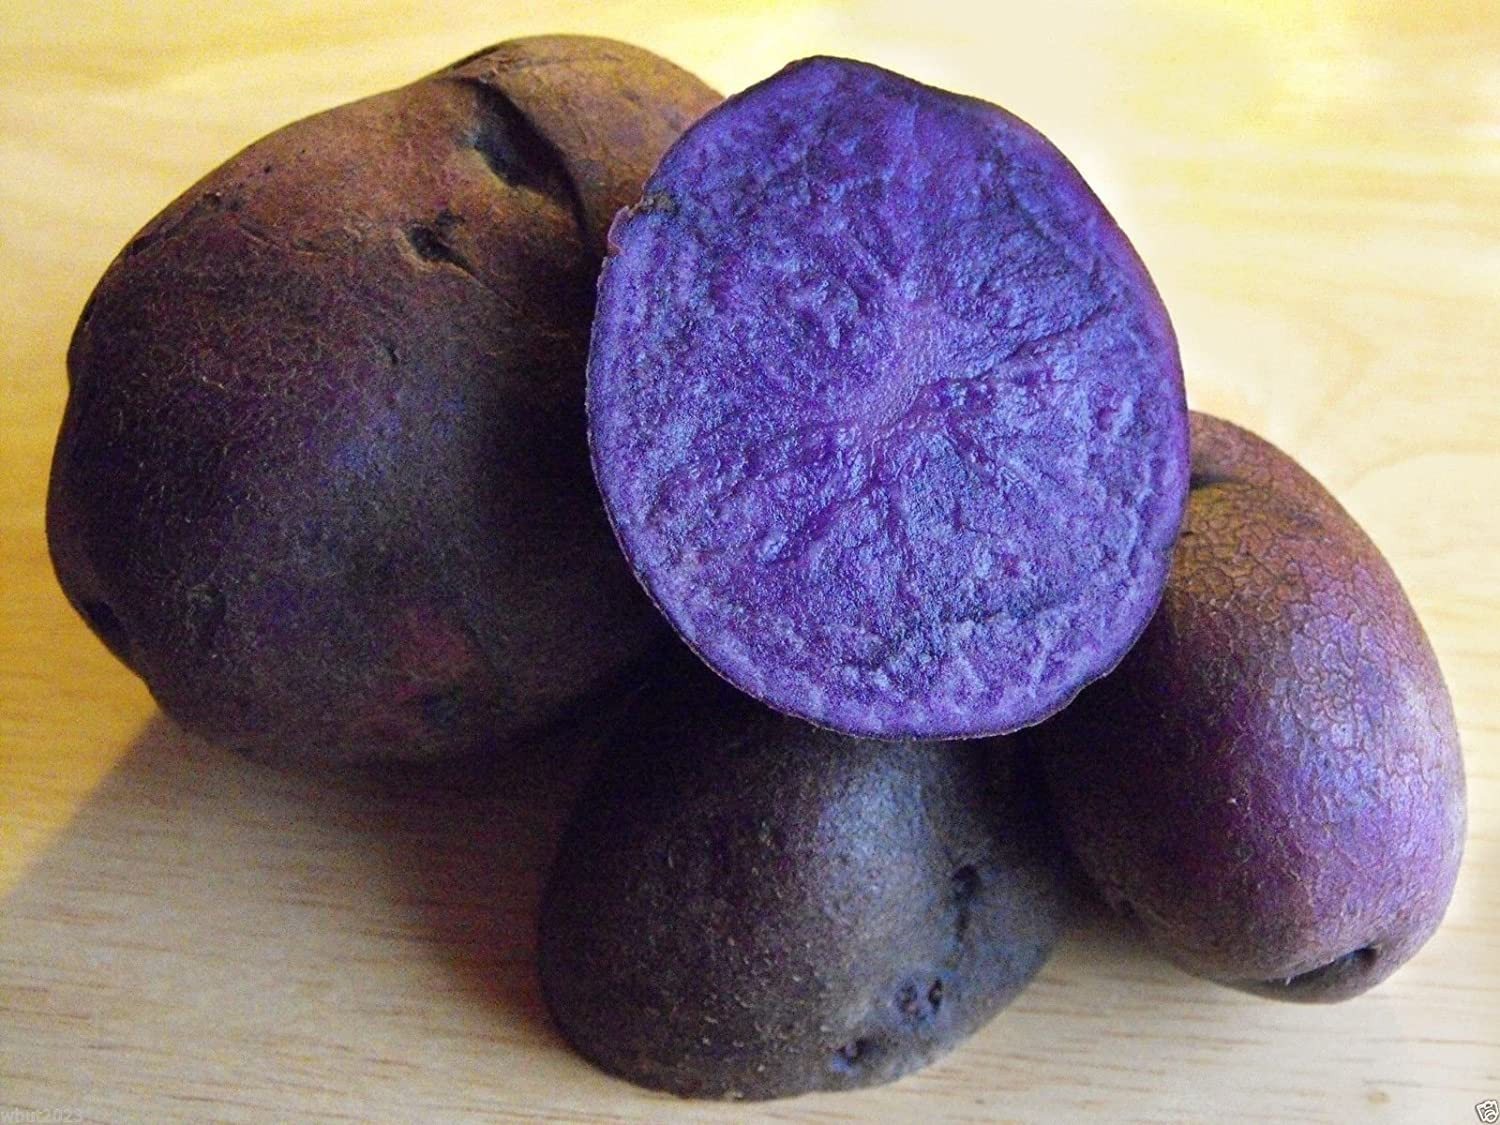 (1 Pound) Blue potato, Speciality Potato, Color is retained while cooking. Excellent yield